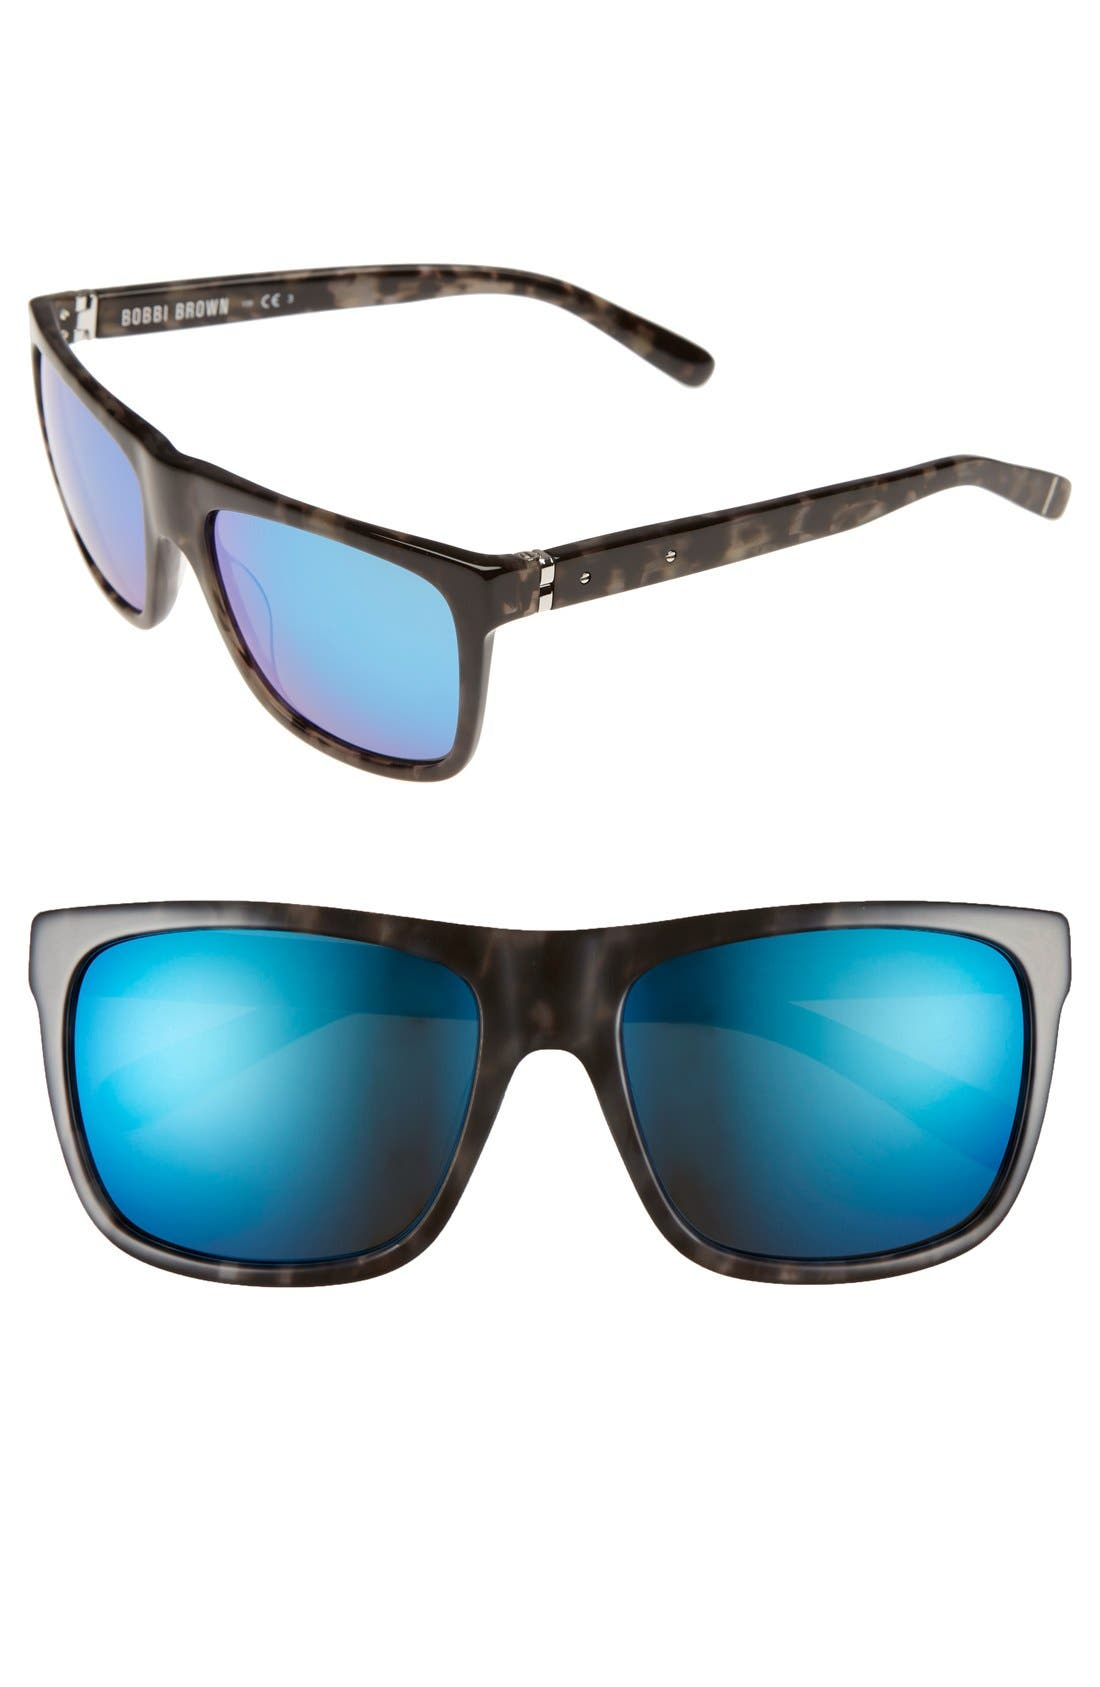 Main Image - Bobbi Brown 'The Harley' 55mm Sunglasses